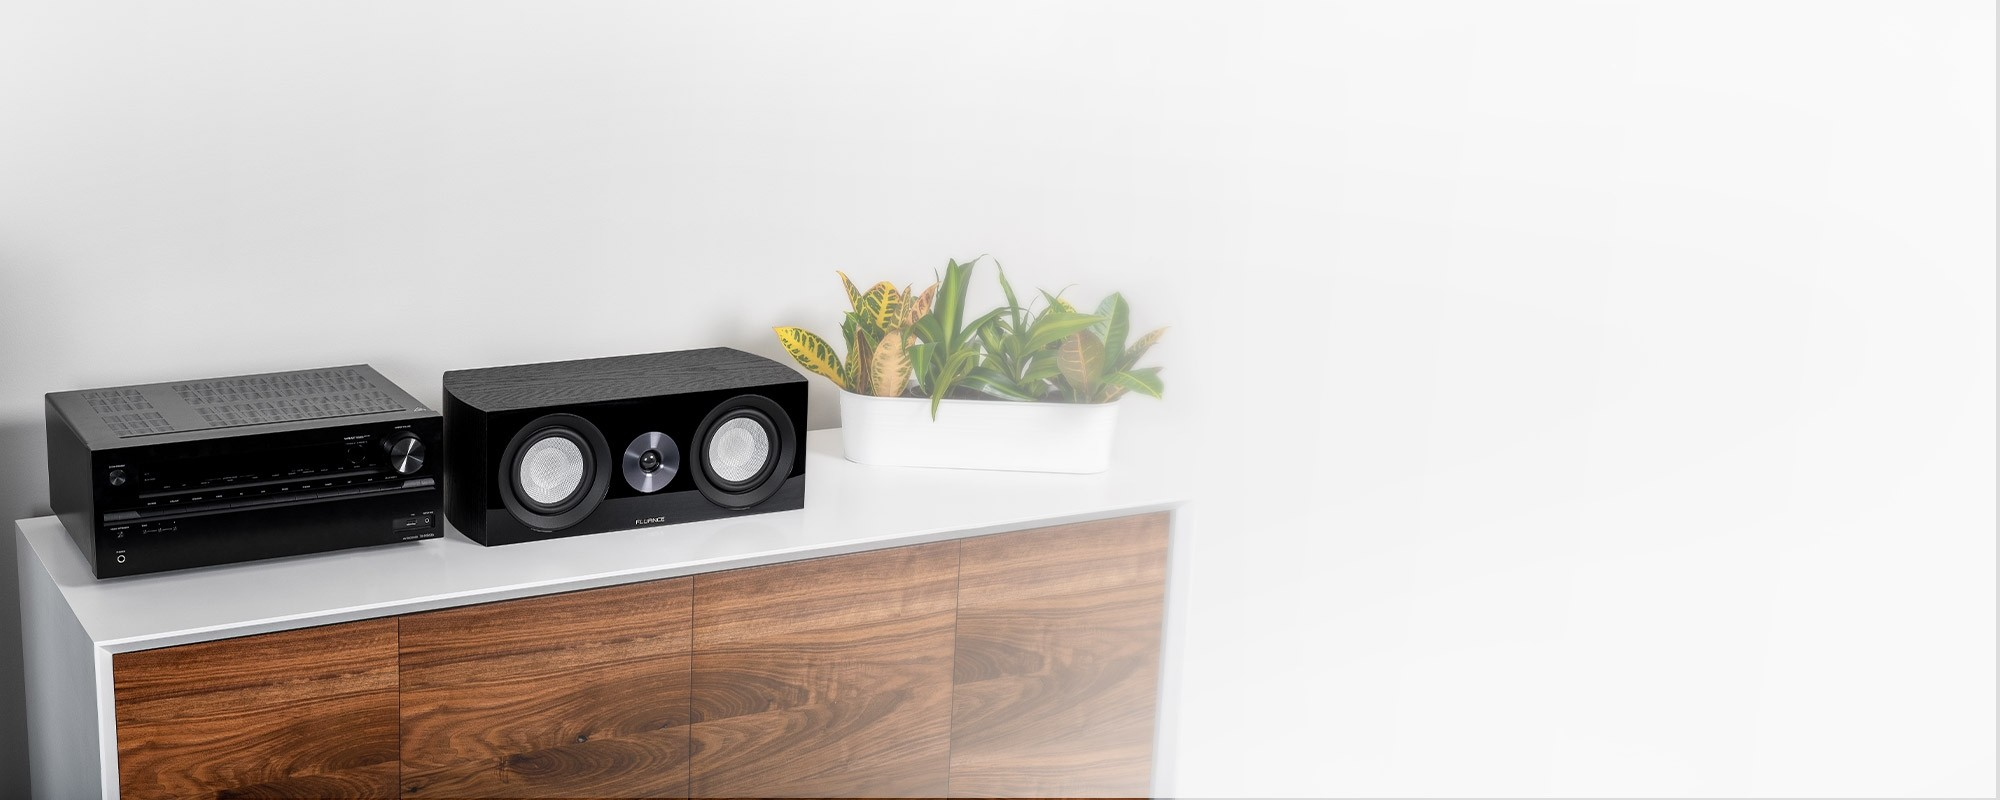 XL8C Center Channel Speaker with Receiver and plant